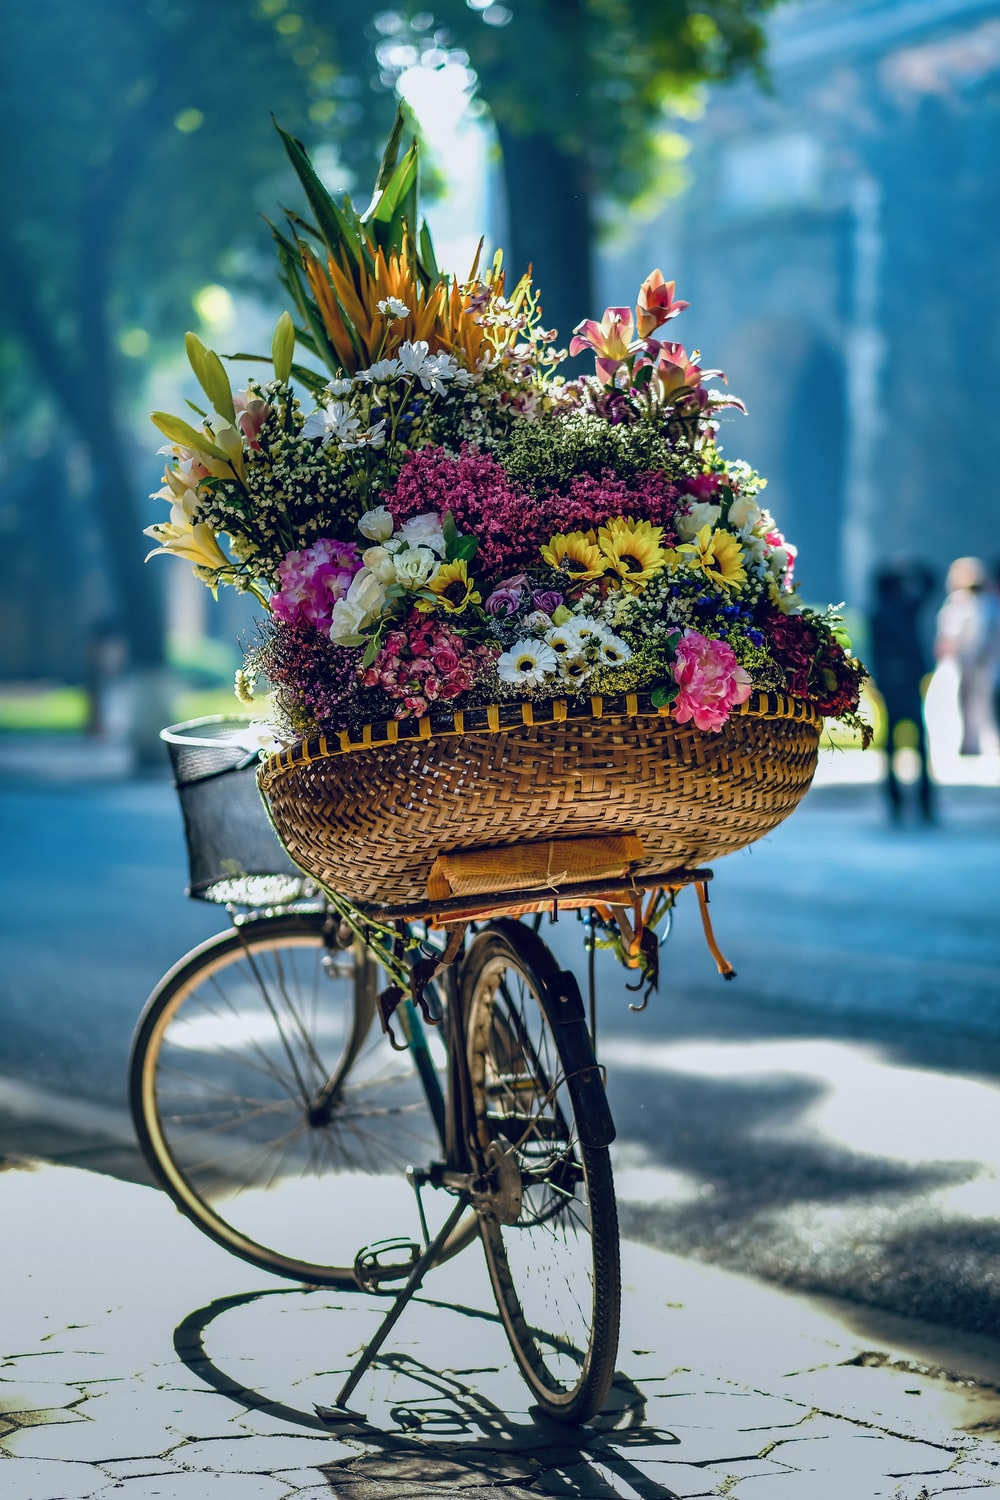 flowers in brown woven basket on bicycle